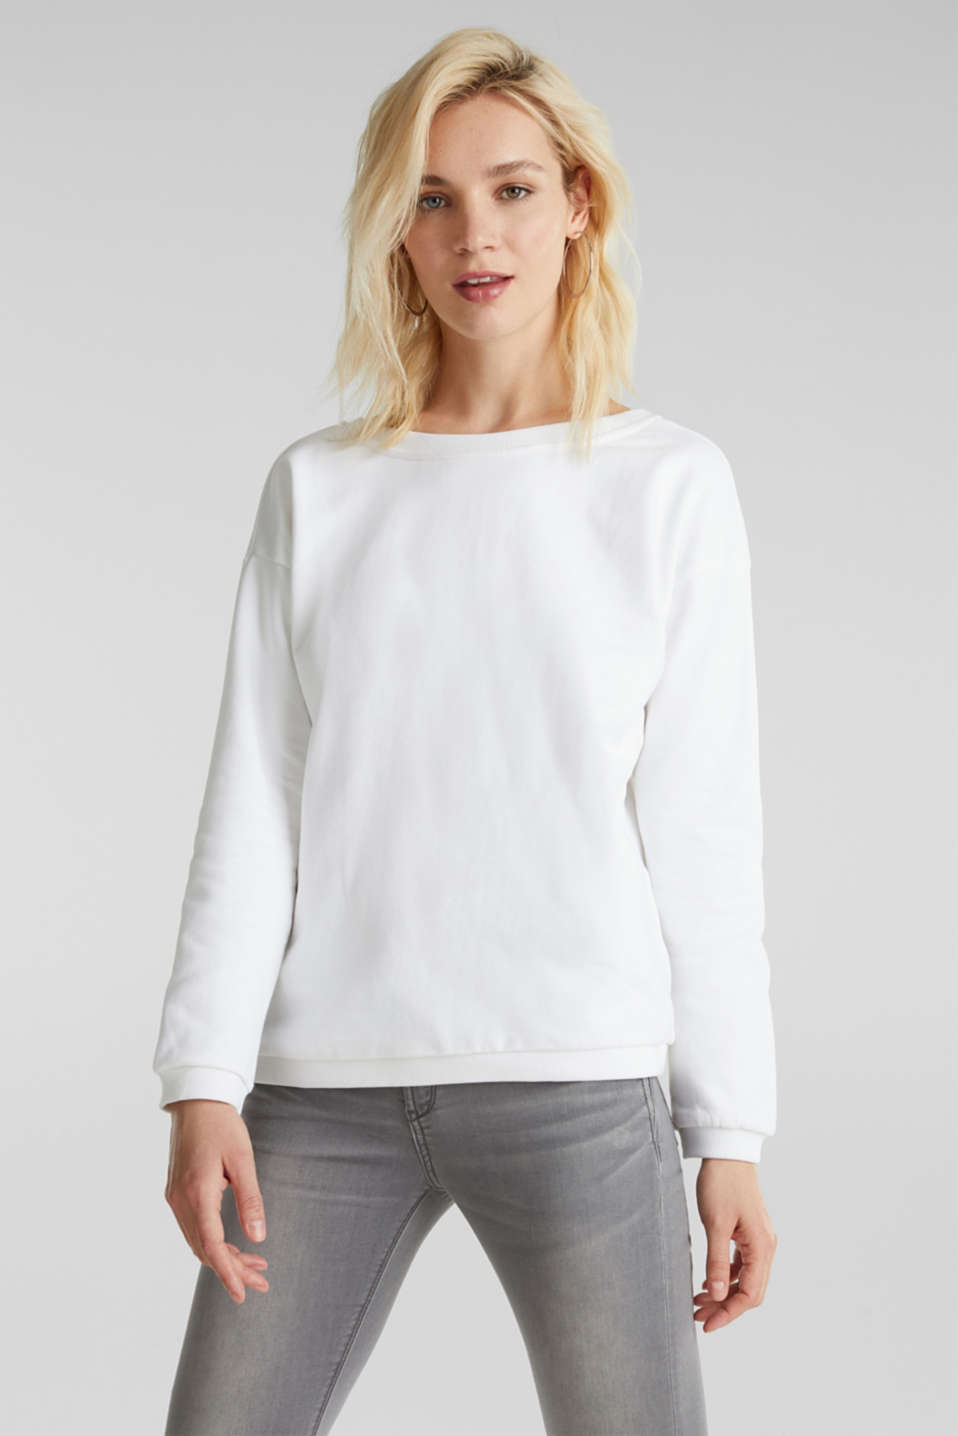 Esprit - Sweat-shirt à encolure au dos